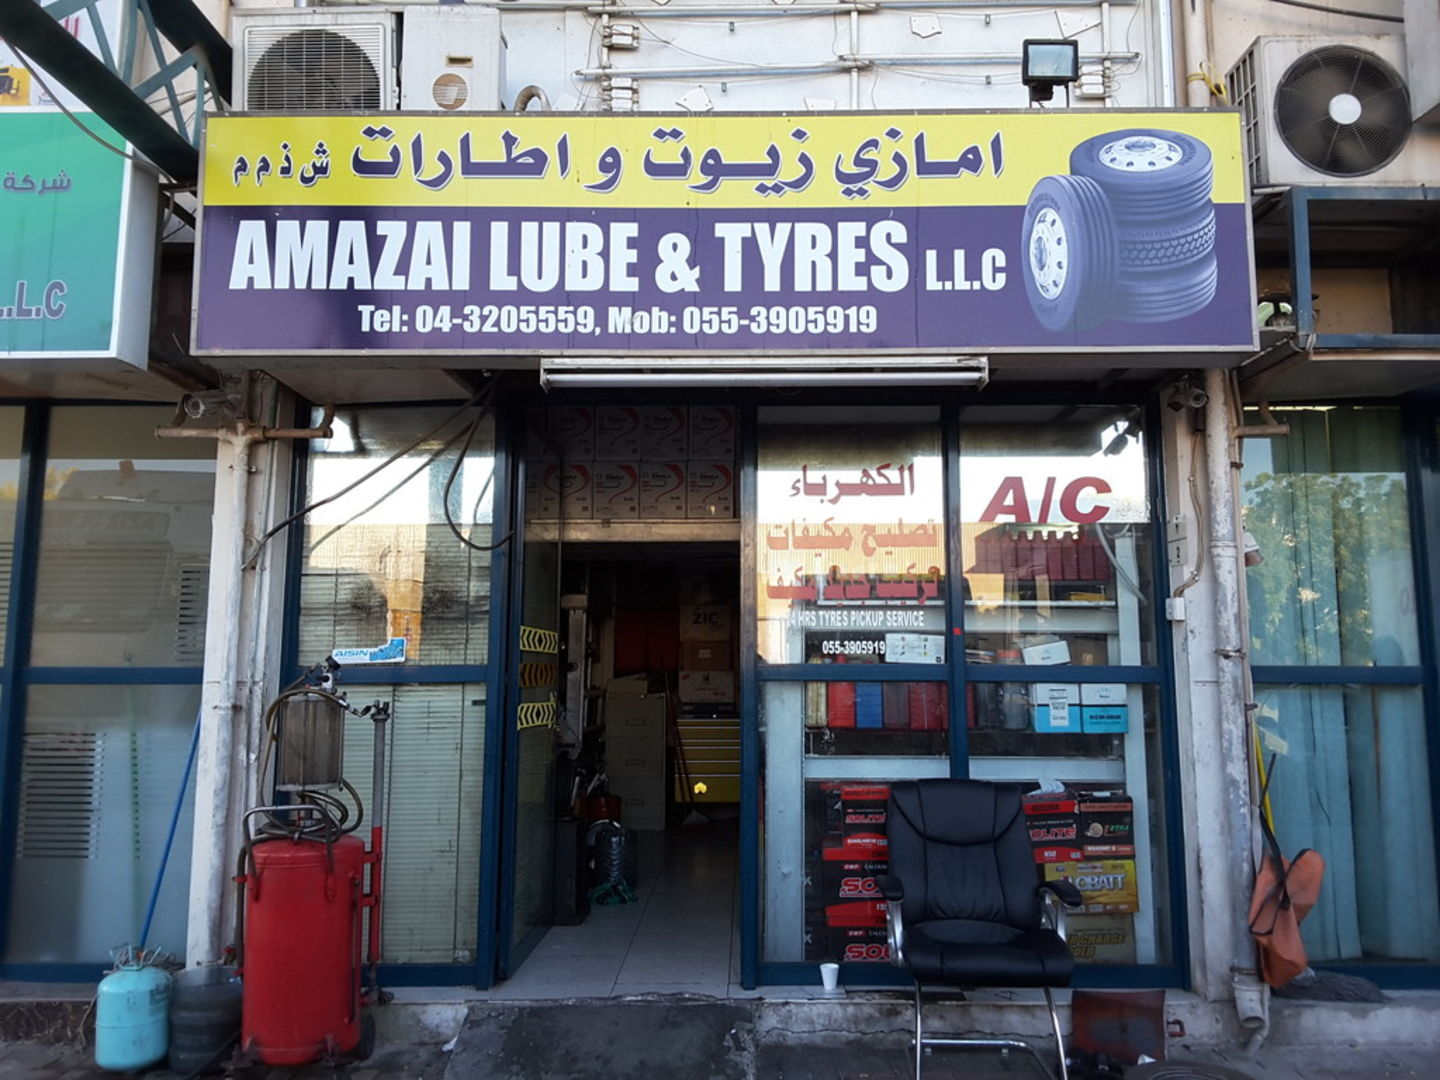 HiDubai-business-amazai-lube-and-tyres-transport-vehicle-services-auto-spare-parts-accessories-ras-al-khor-industrial-3-dubai-2